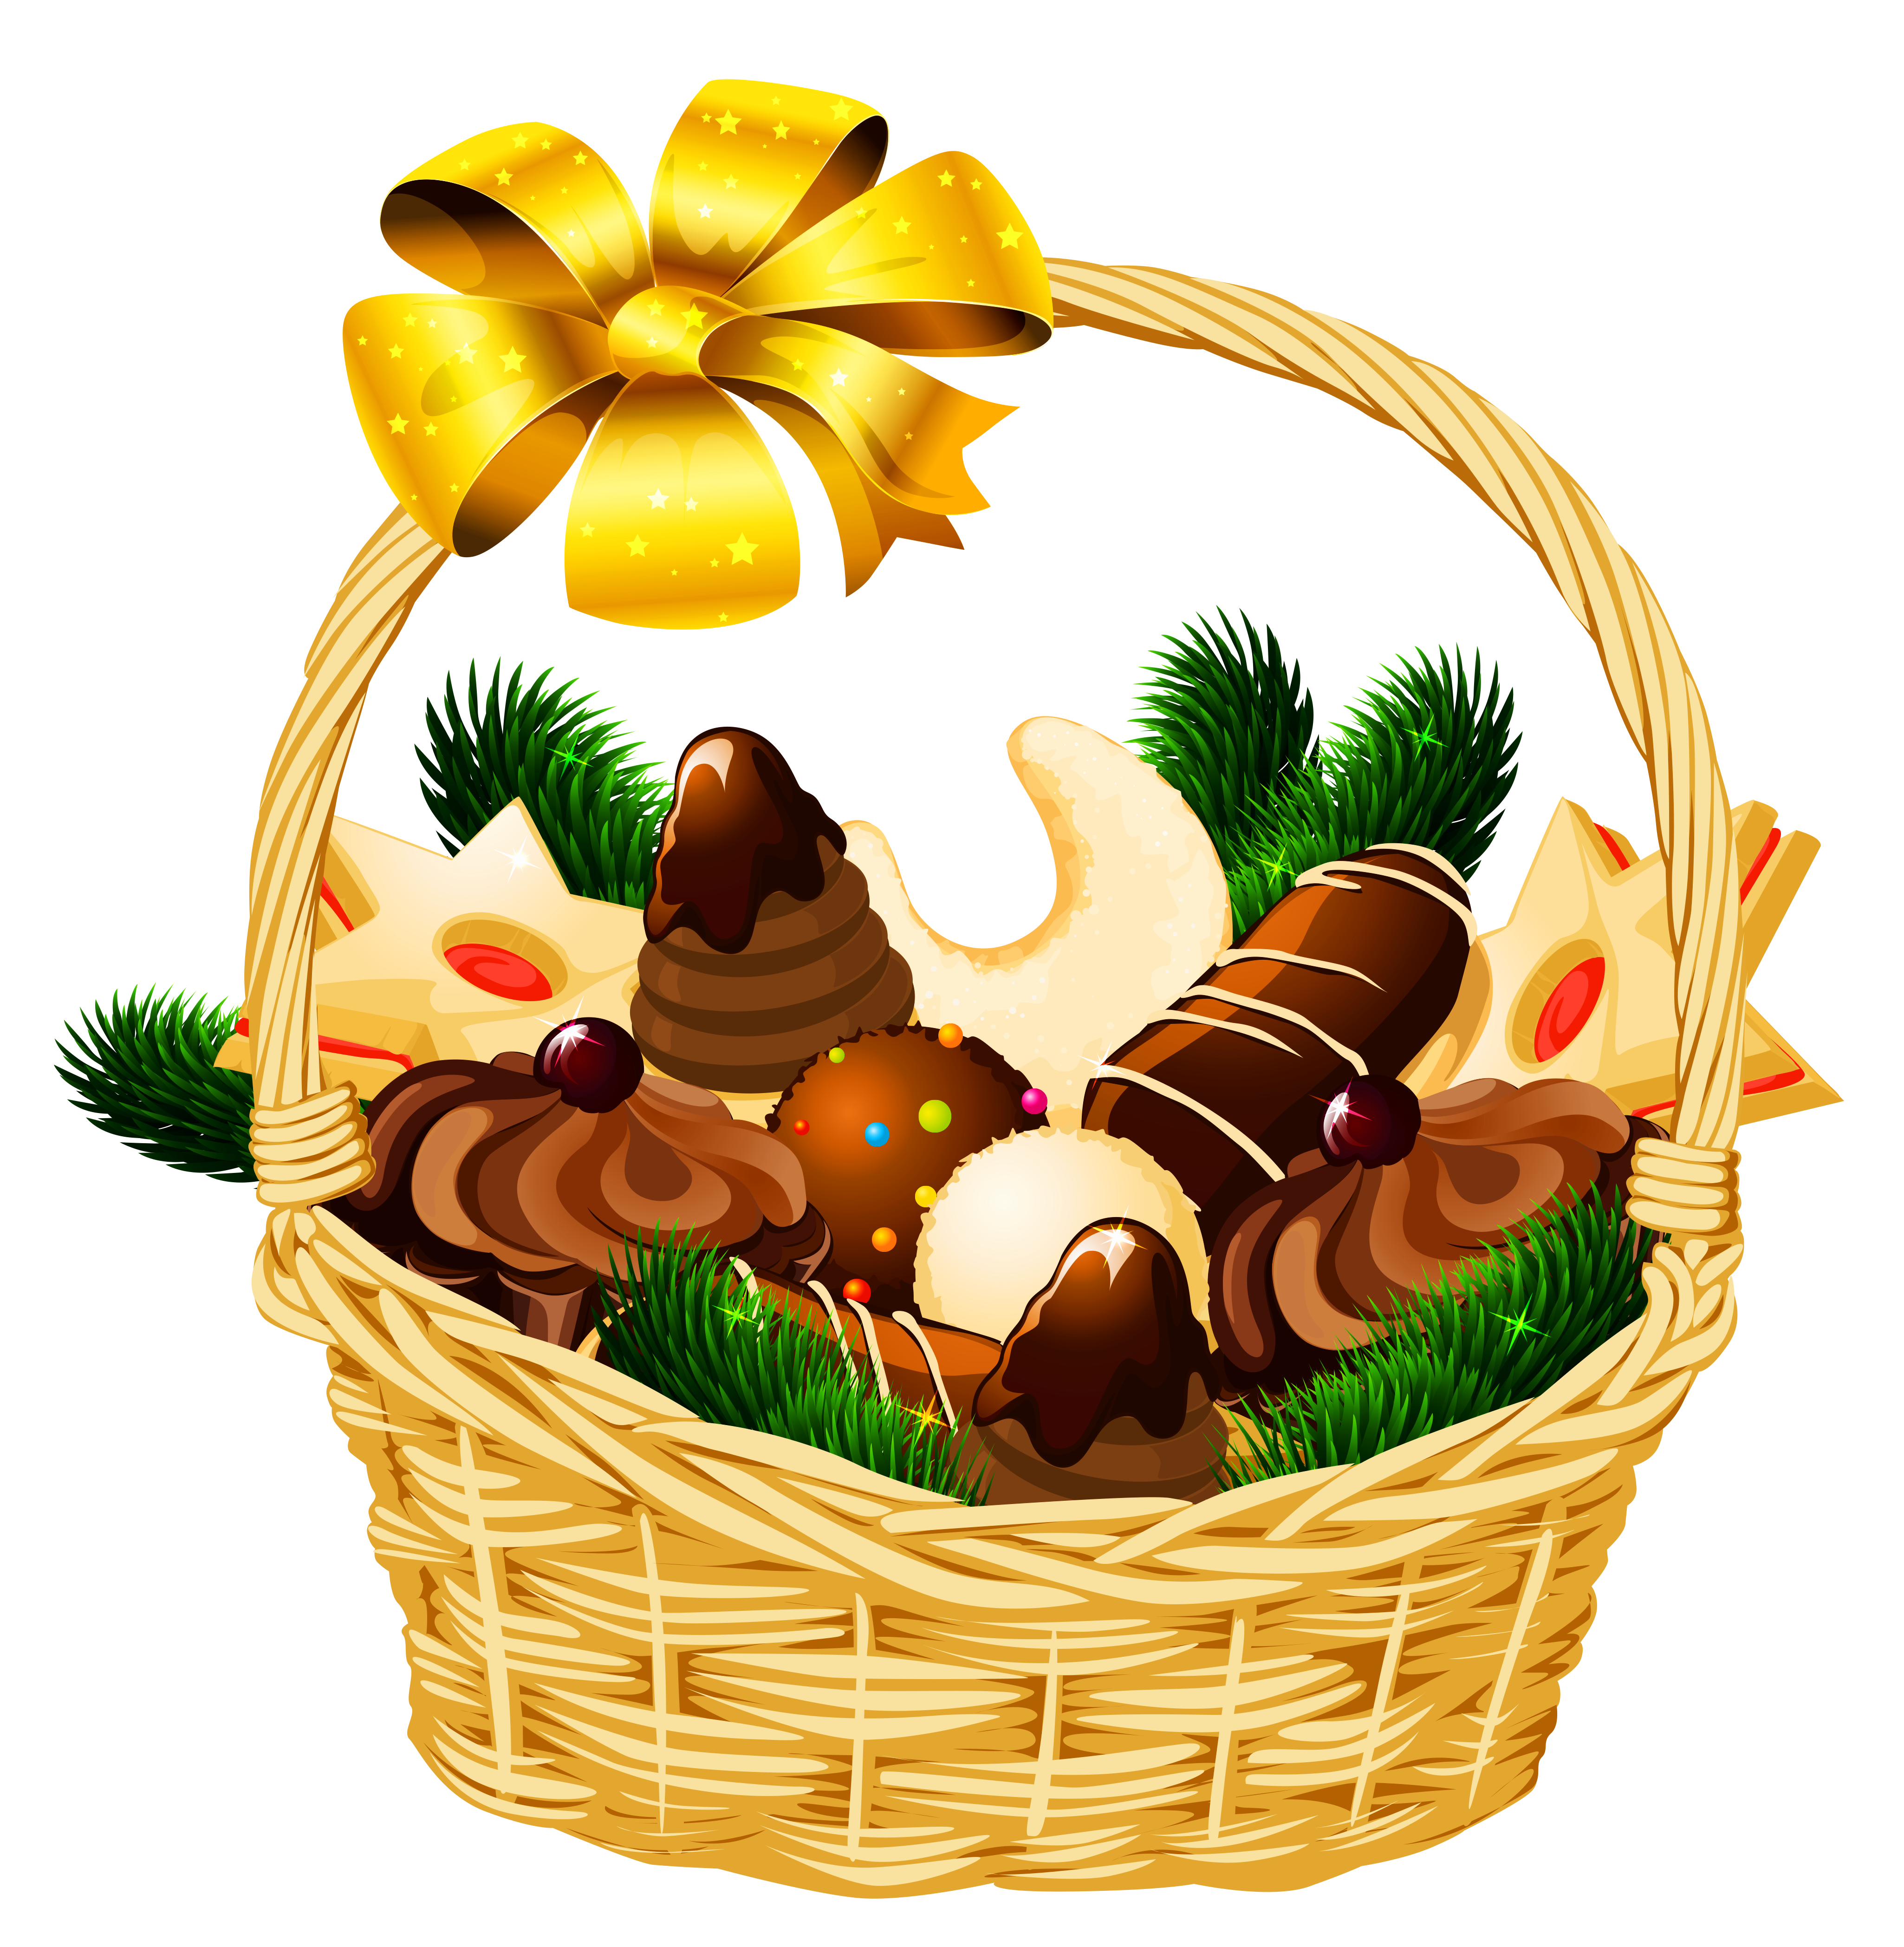 basket raffle Basket clipart christmas hamper pencil and in color basket png